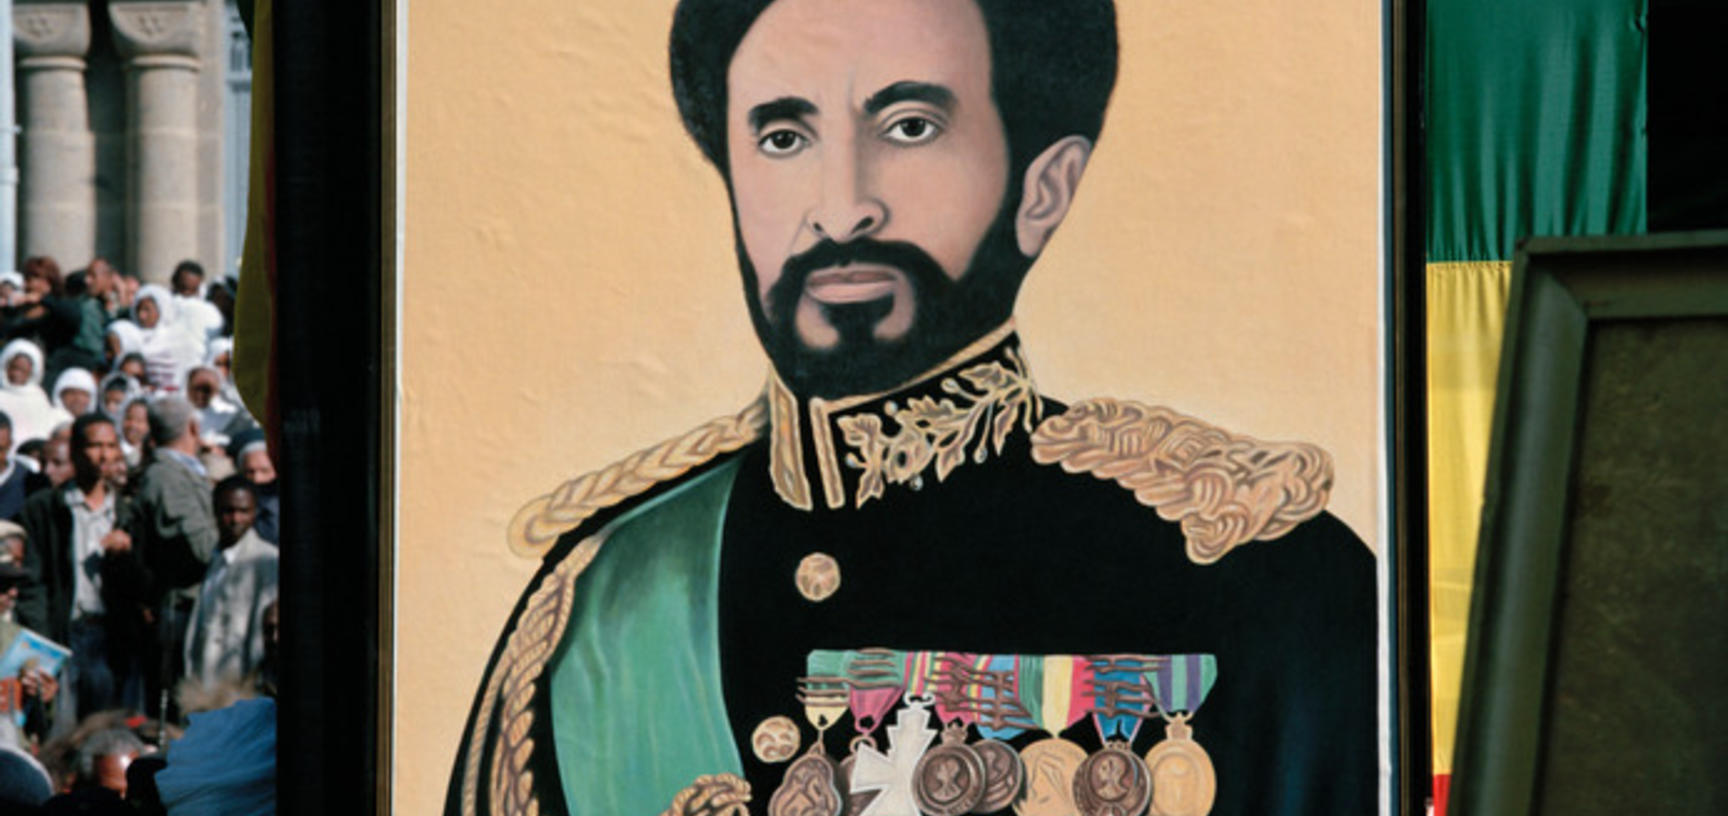 A portrait of Emperor Haile Selassie, displayed as part of the funeral cortège. Addis Ababa, Ethiopia. Photograph by Peter Marlow. 2000.